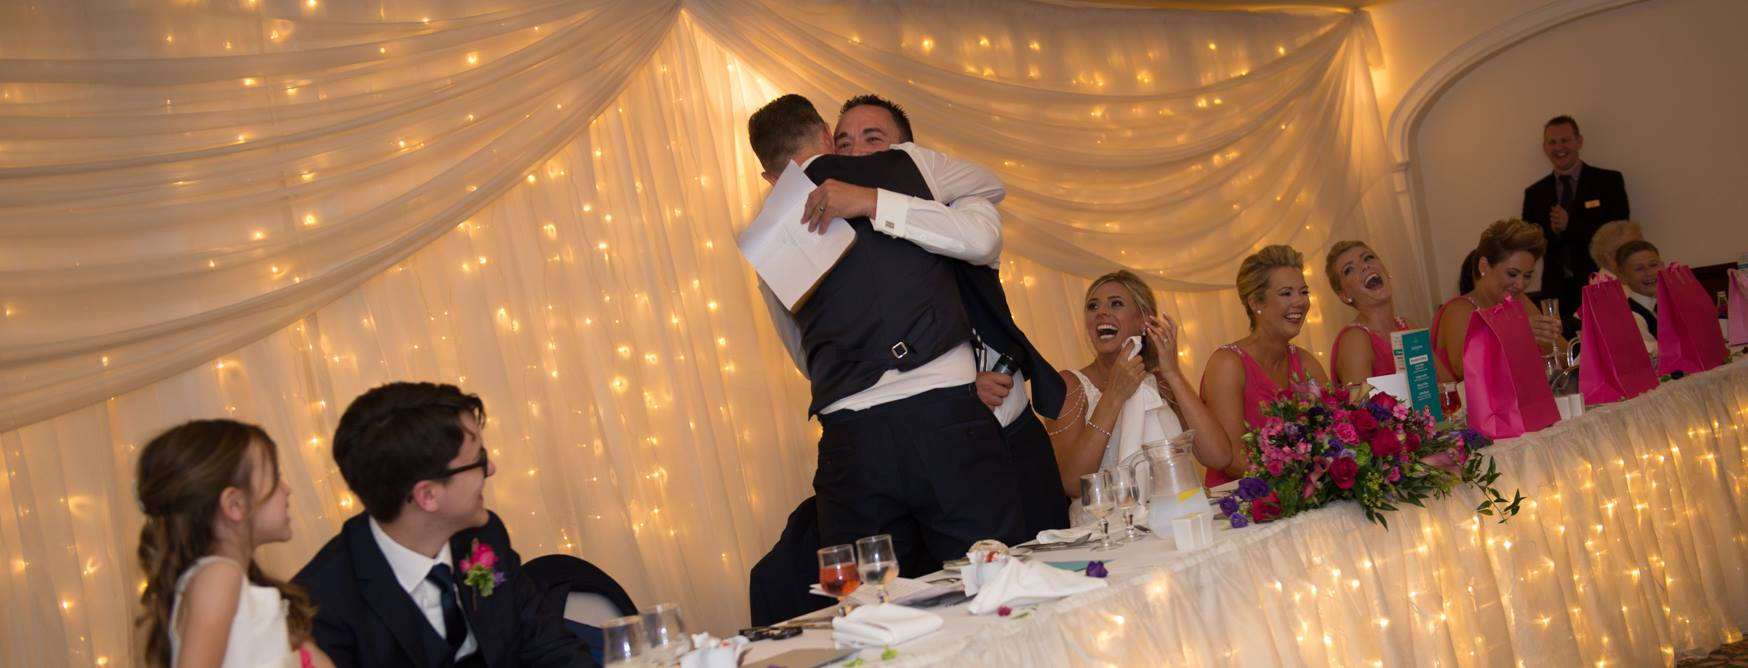 Here Are Some Beautiful Wedding Pictures From The Leighinmohr House Hotel Facebook Page